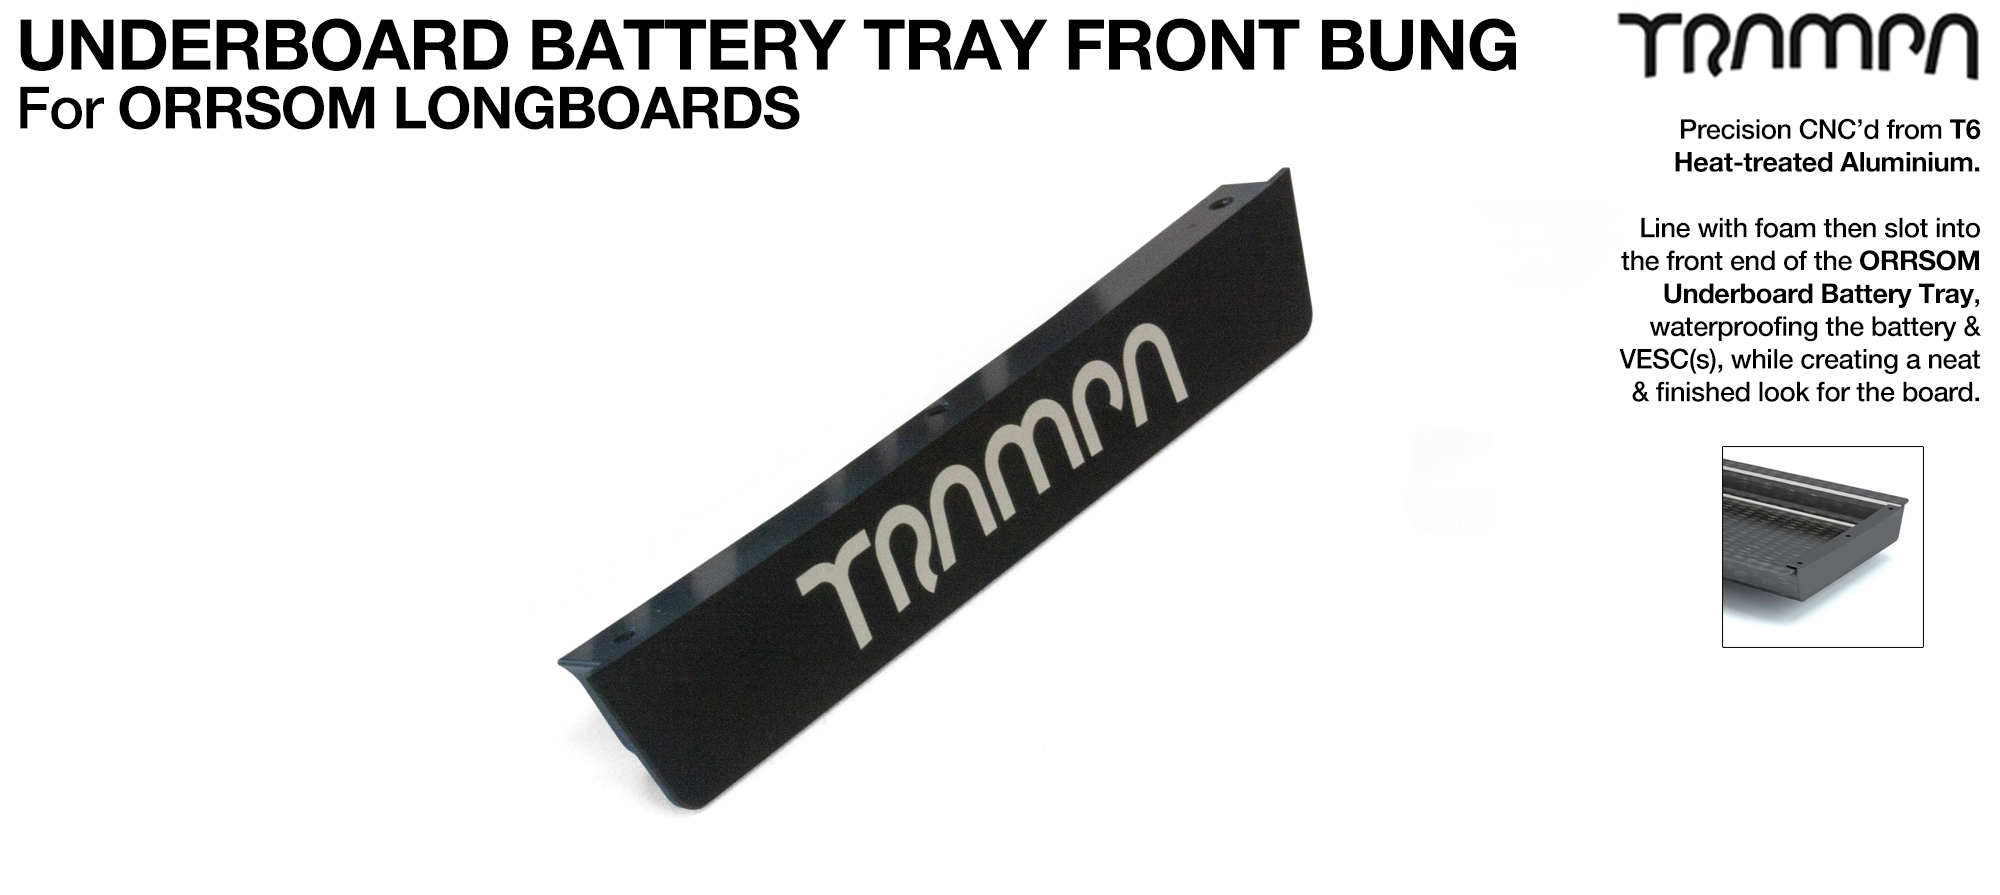 Underboard Battery Tray Frontend T6 Bung